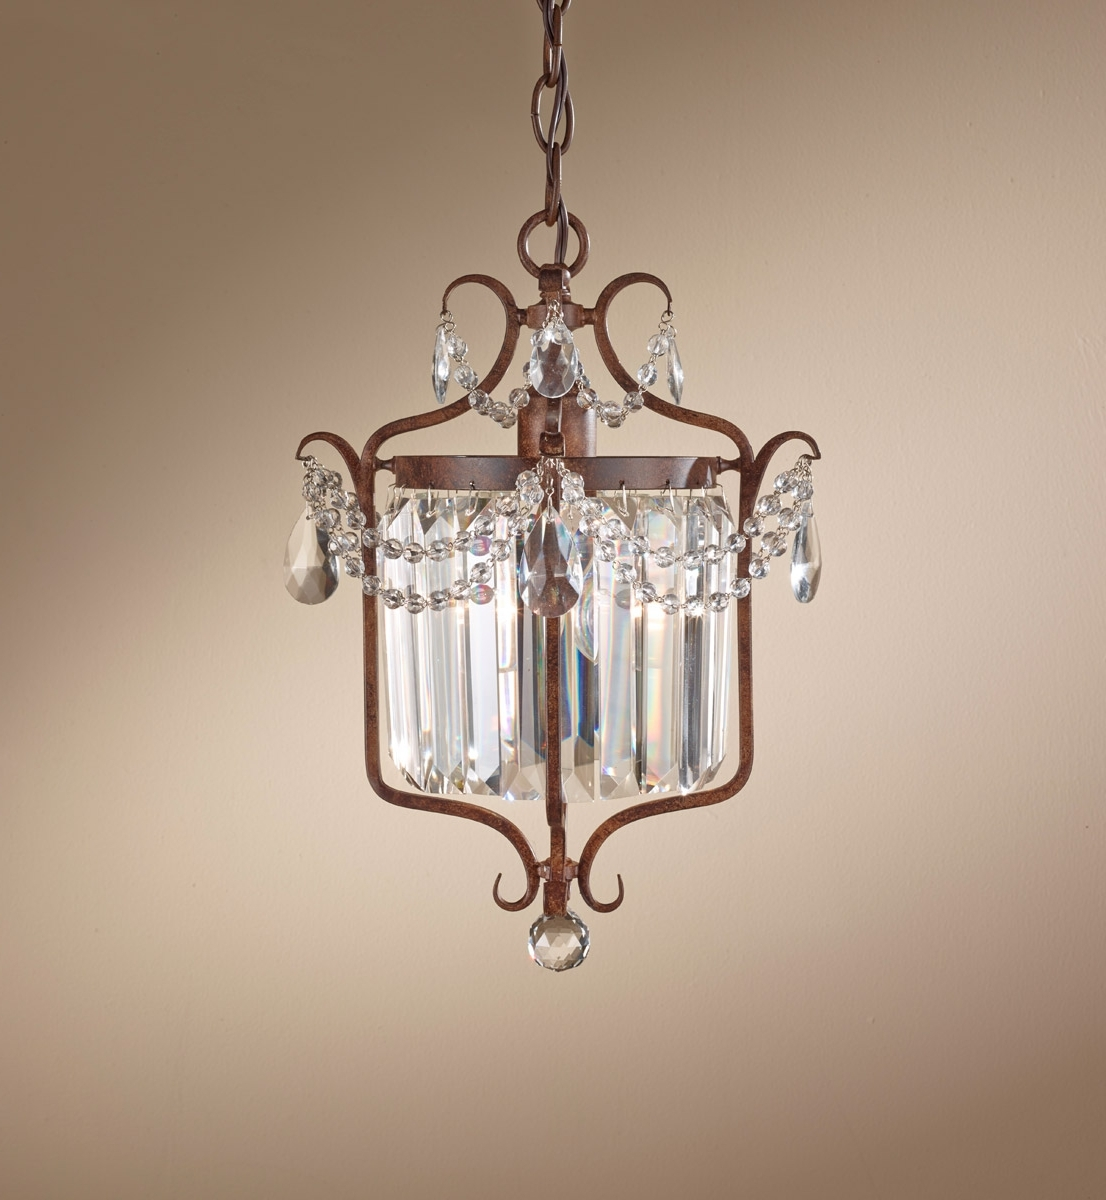 Widely Used Gianna Scuro 1 Light Mini Chandelier (View 15 of 15)